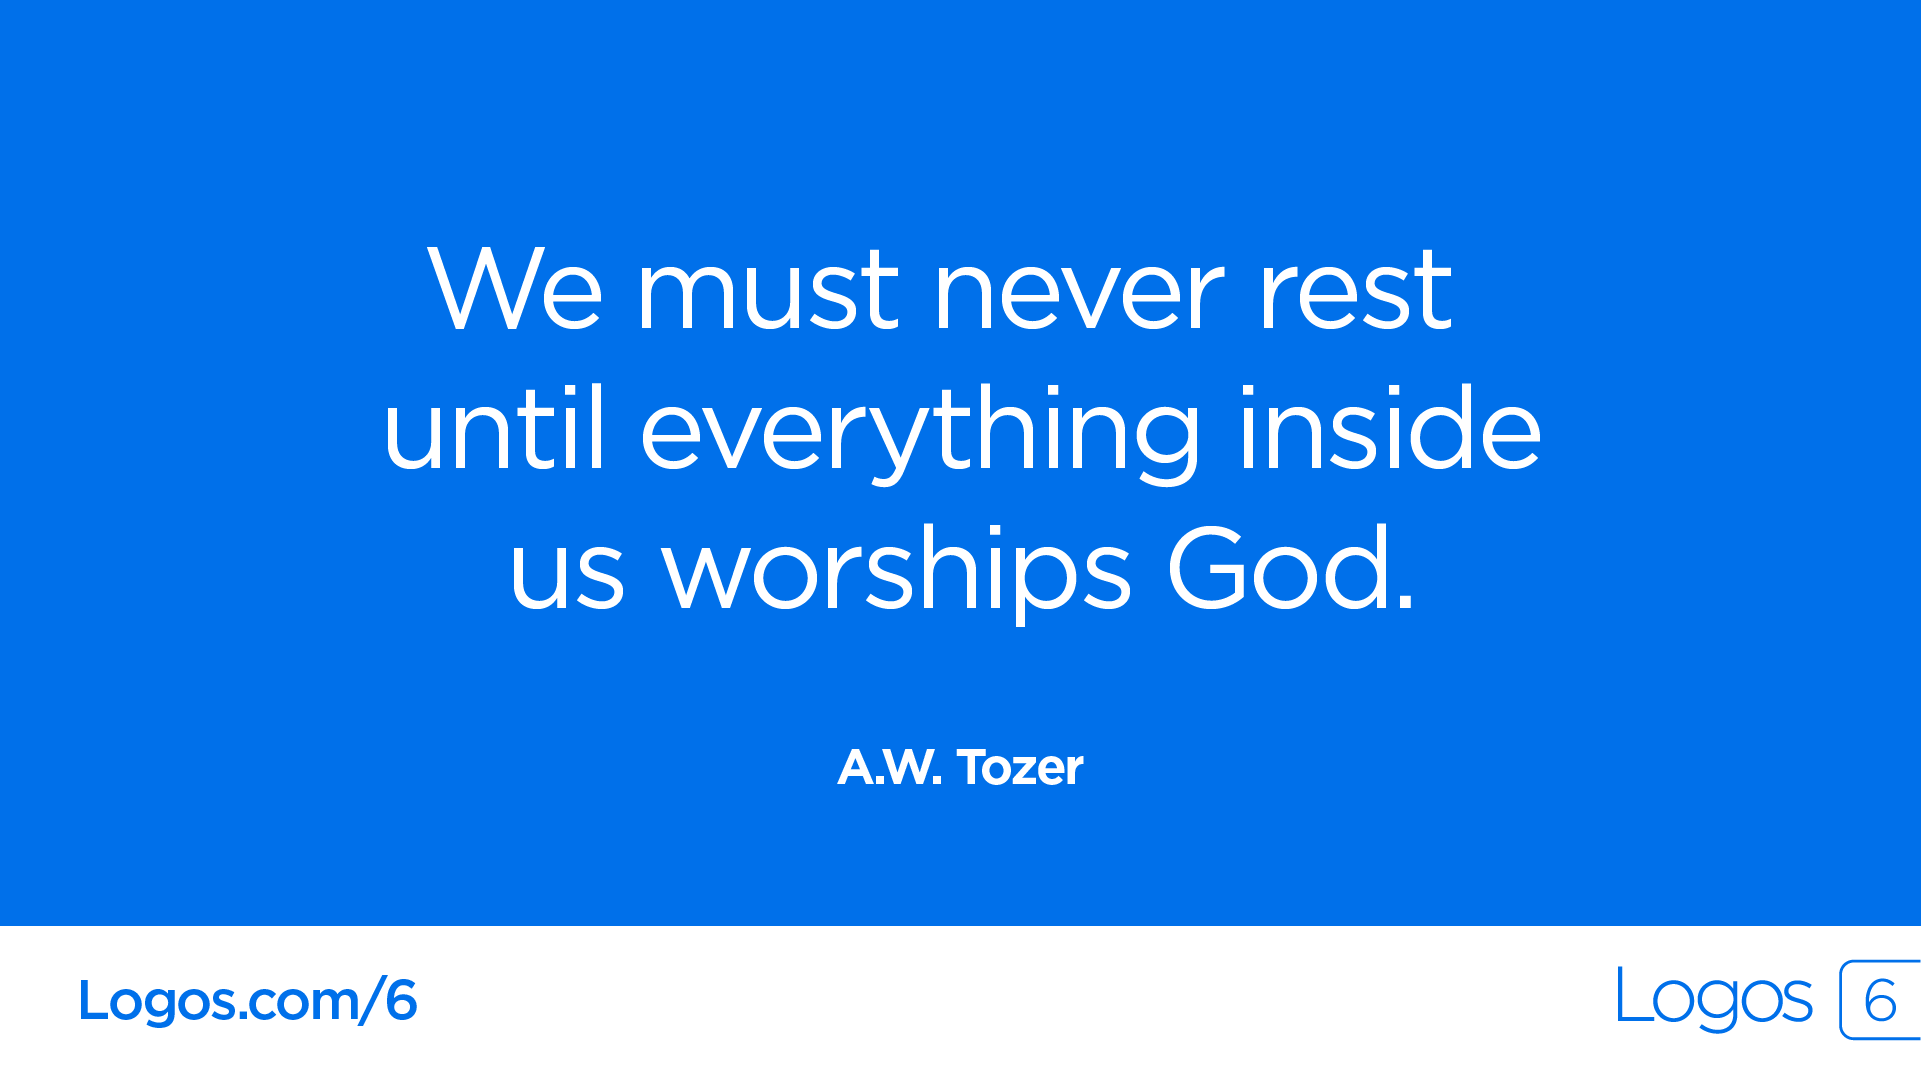 """RT @Logos: """"We must never rest until everything inside us worships God."""" —A.W. Tozer http://t.co/9R0LzvwUfP"""